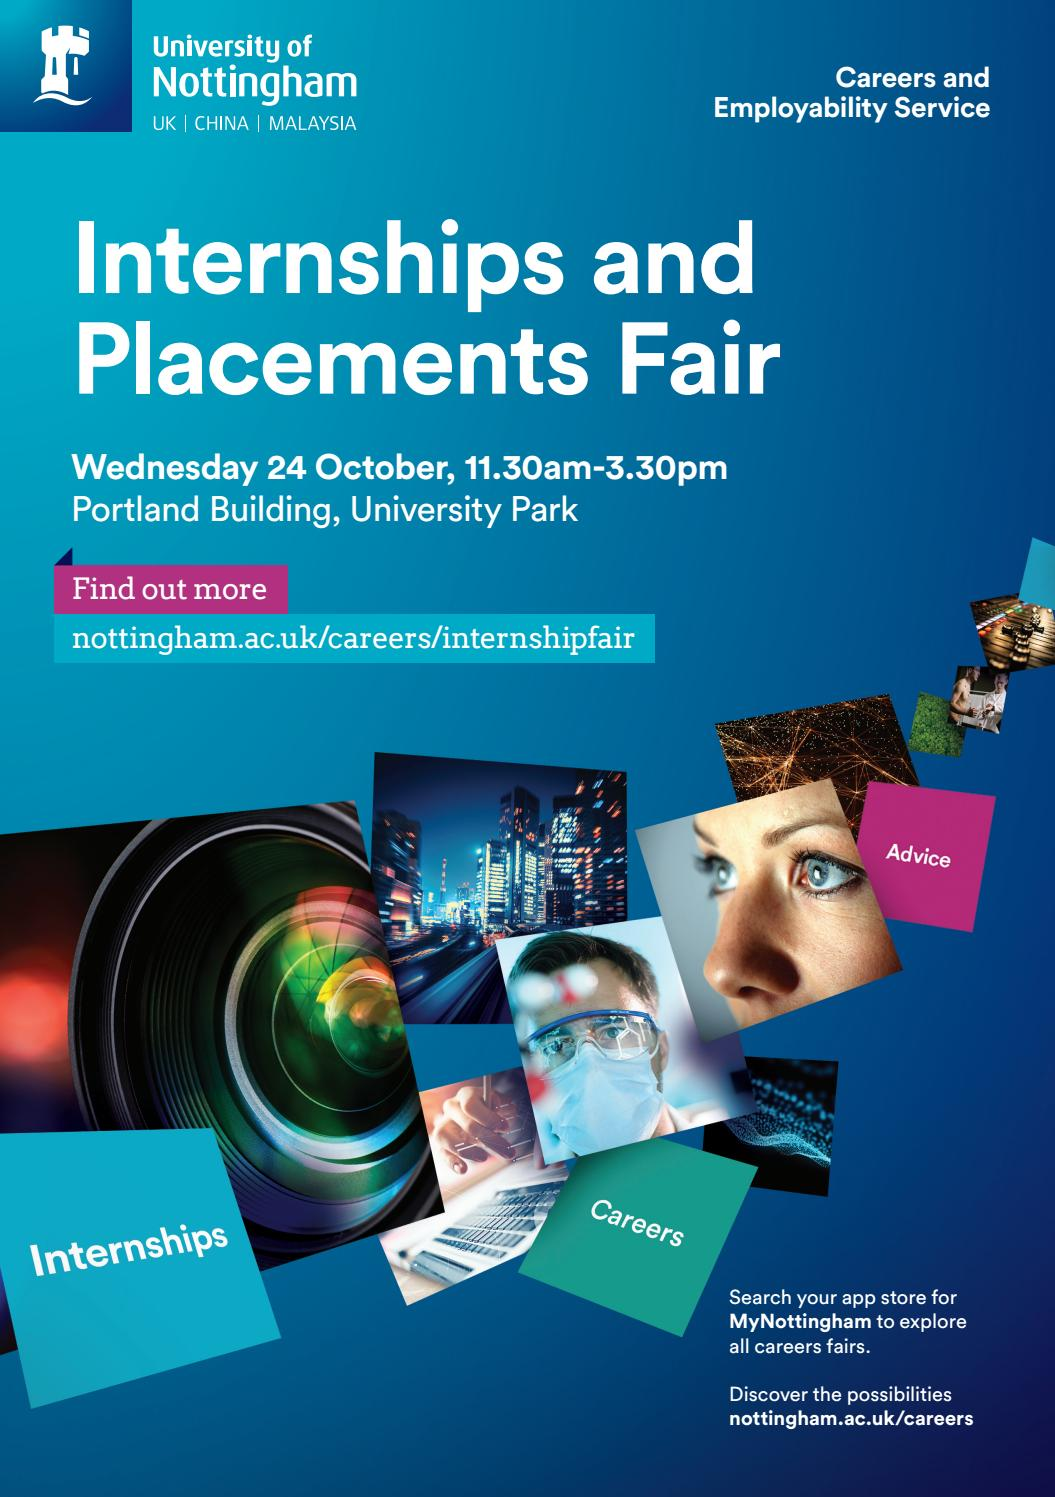 Internships and Placements Fair Guide